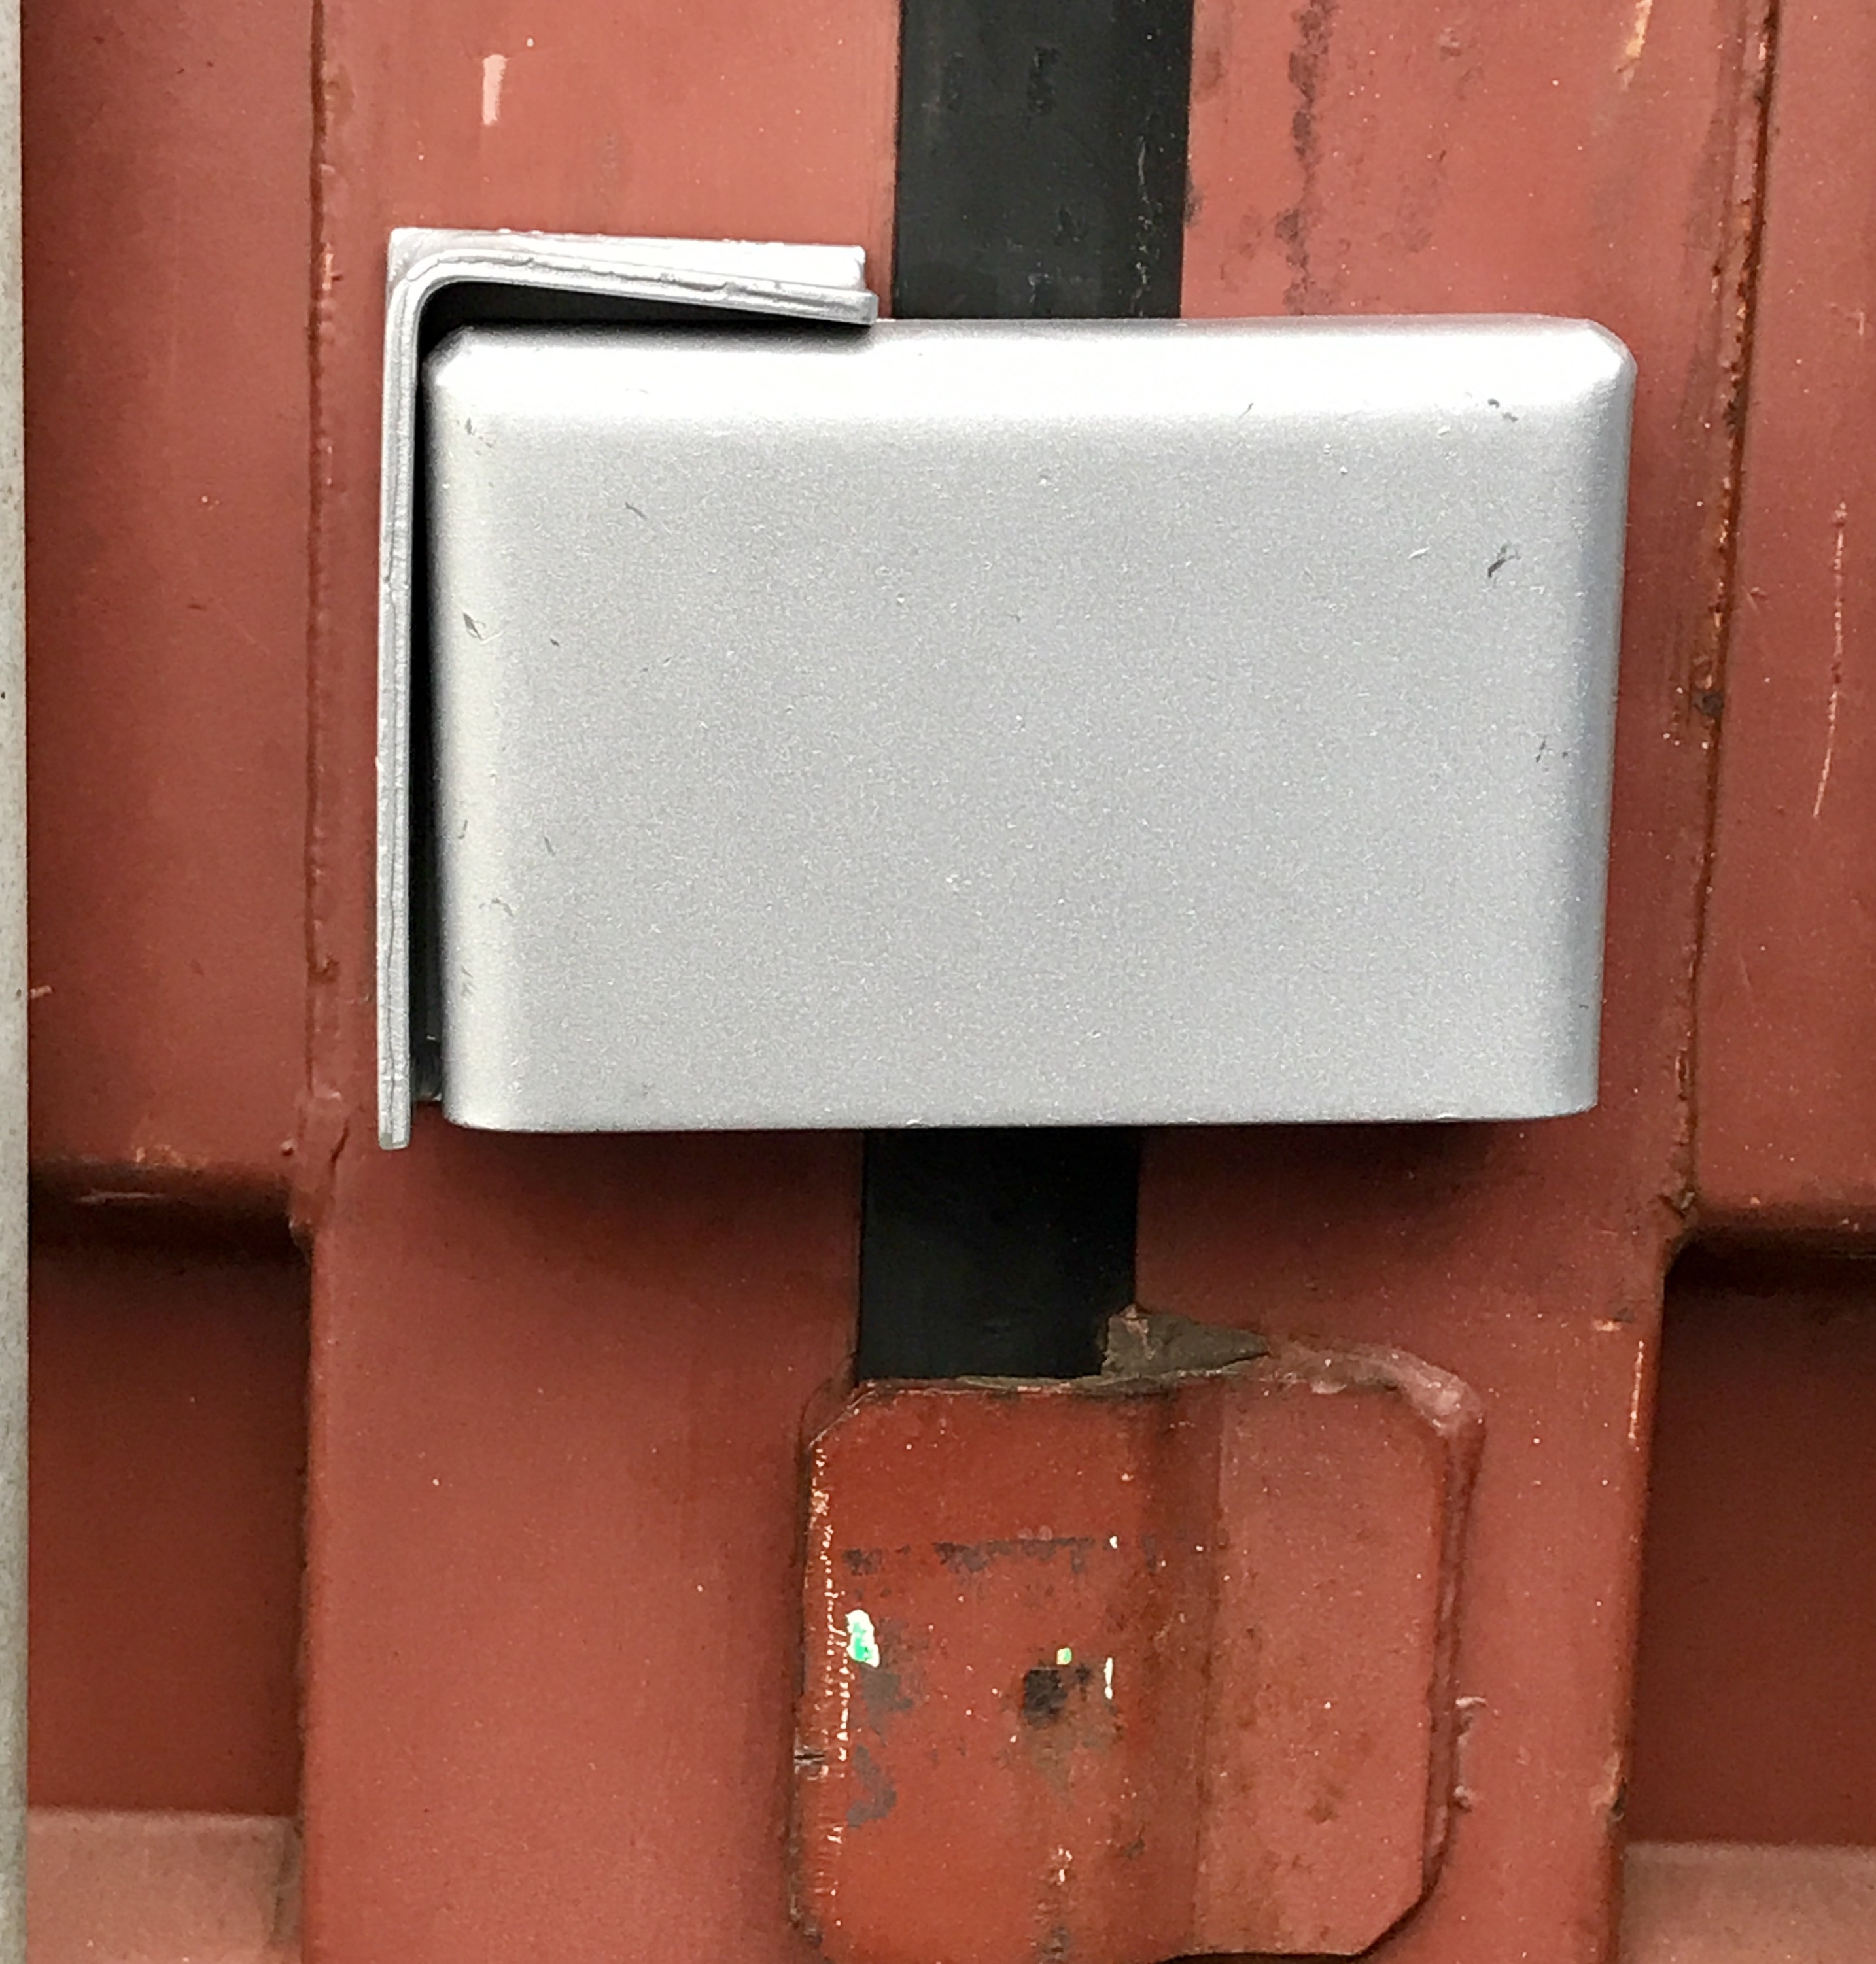 Bolt On Lockbox With Block Lock Independent Cargo Container